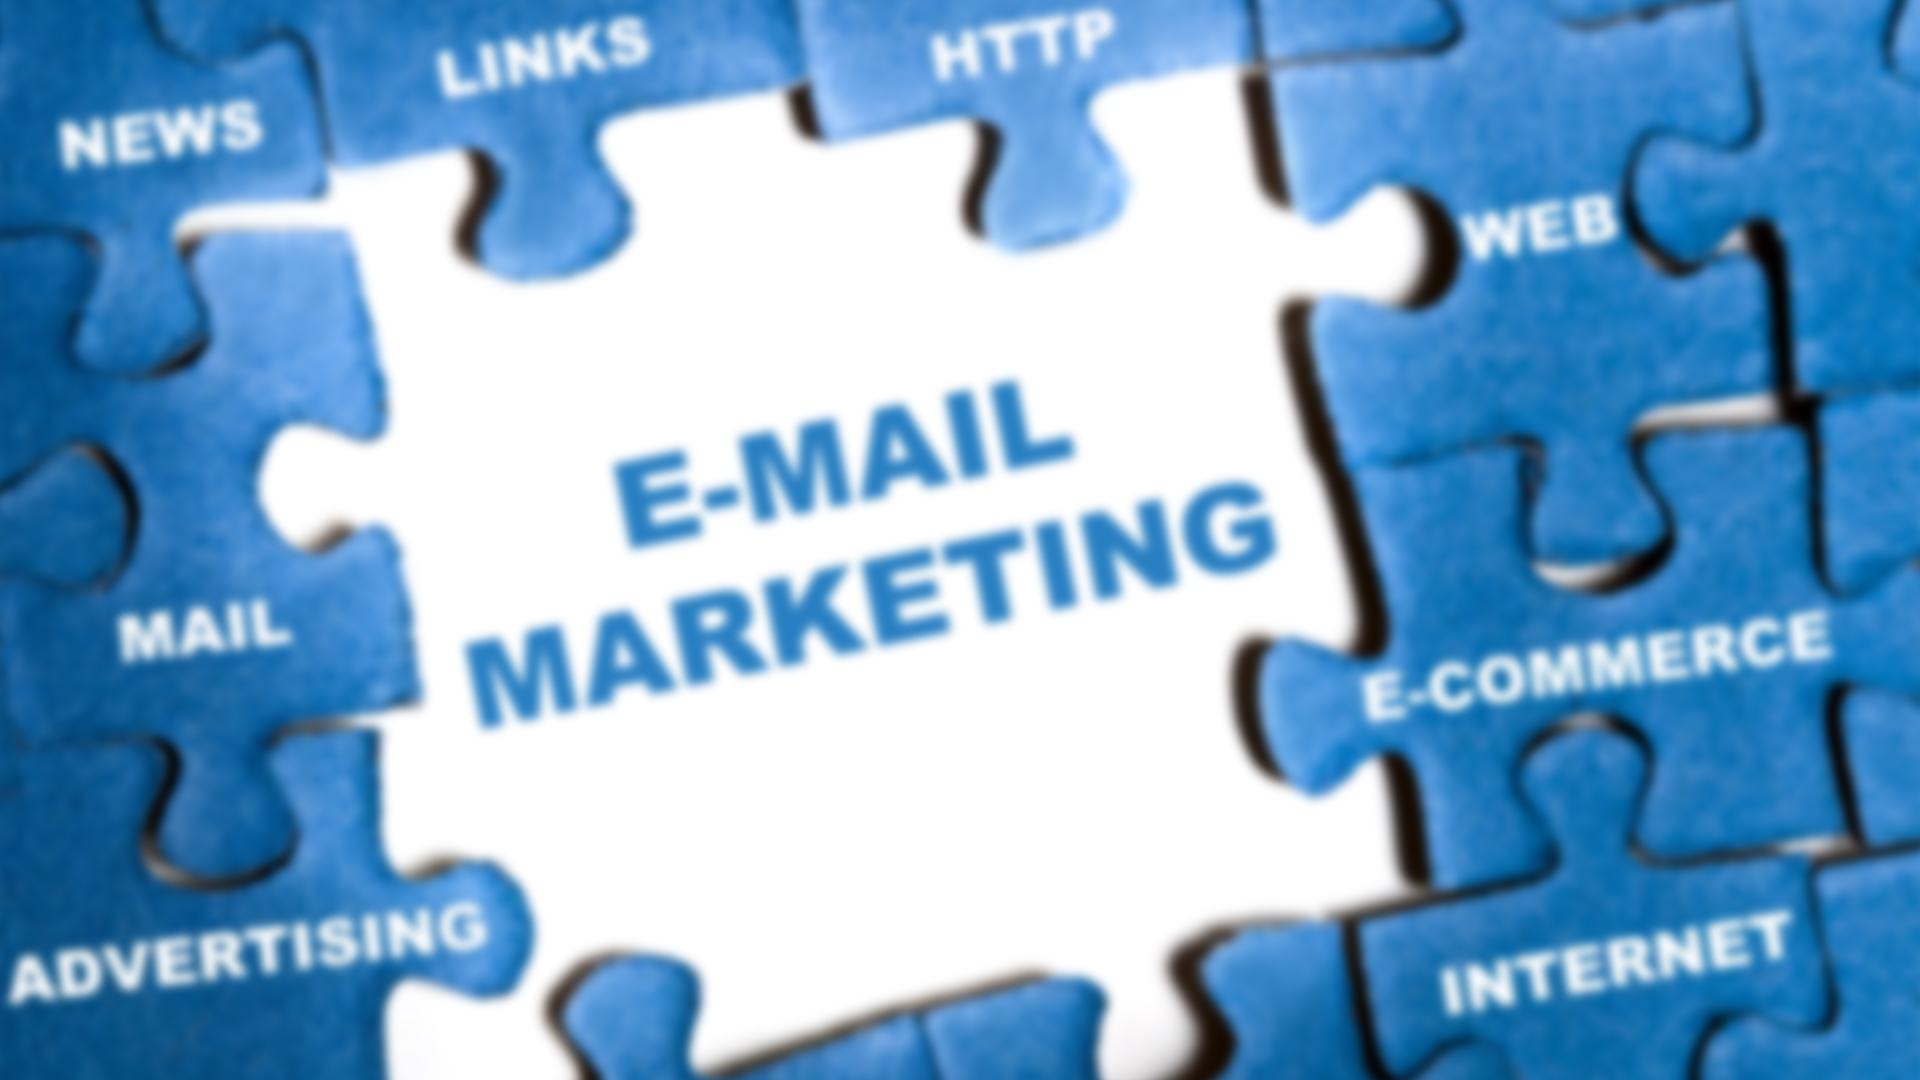 Video Email Marketing is Awesome